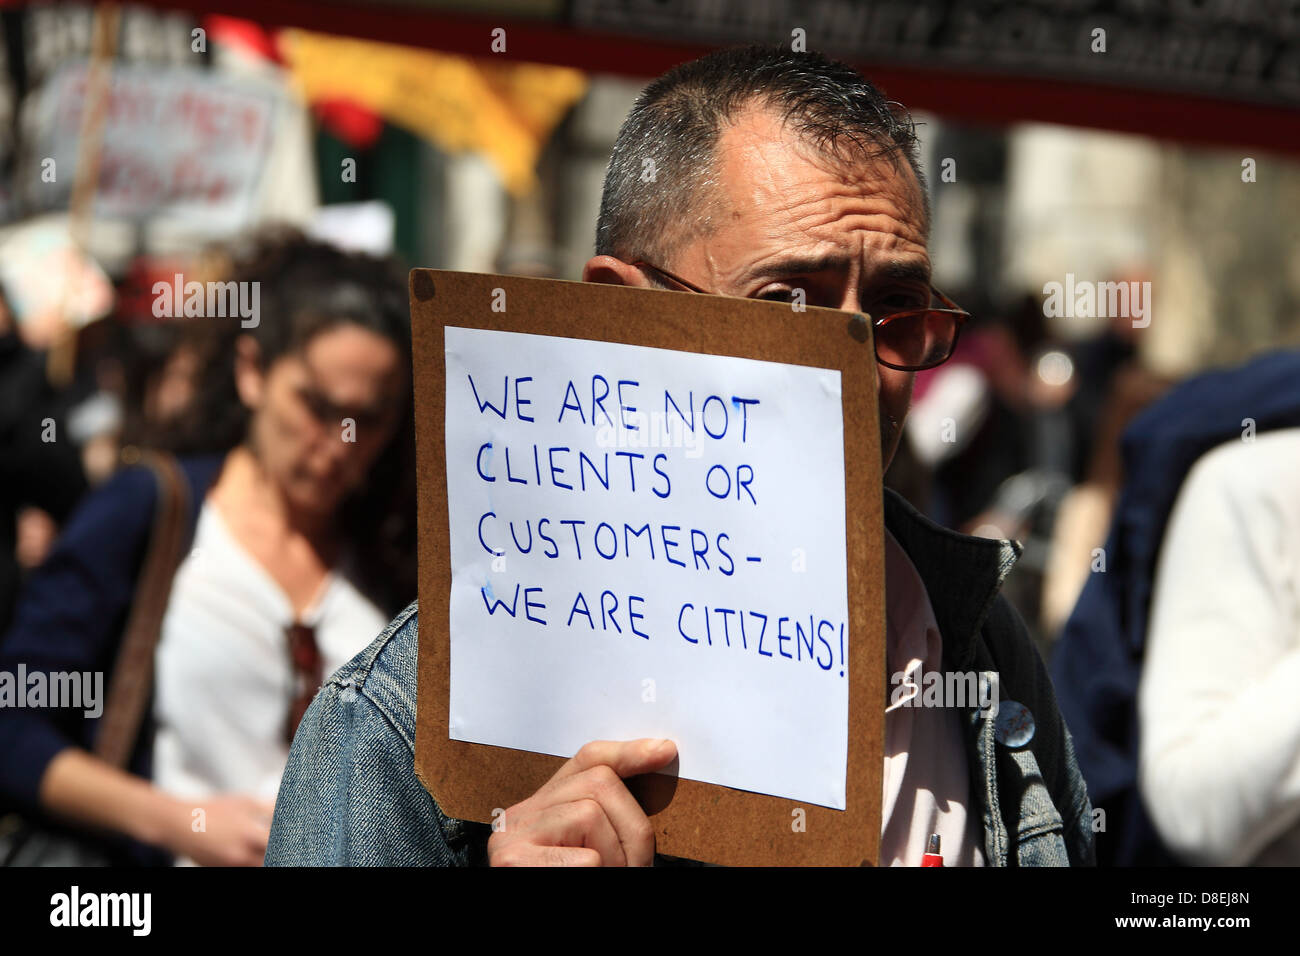 We are not clients or customers we are citizens anti government placard at May Day rally in central London 2013 - Stock Image